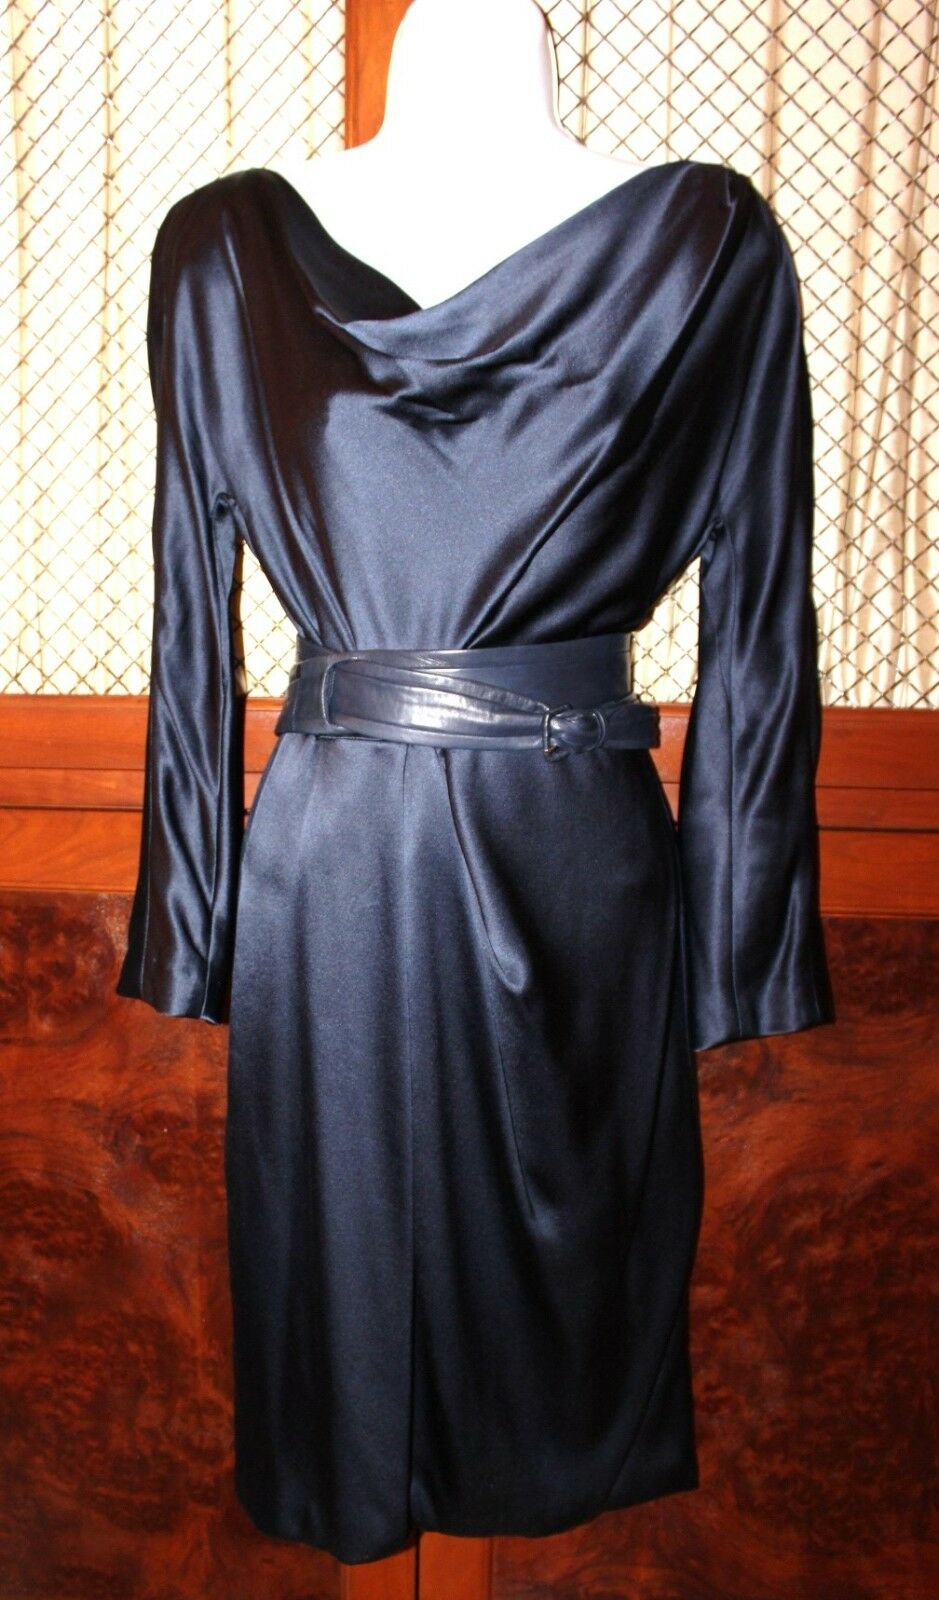 J. MENDEL Navy Navy Navy bluee Silk dress size 6 c7921c